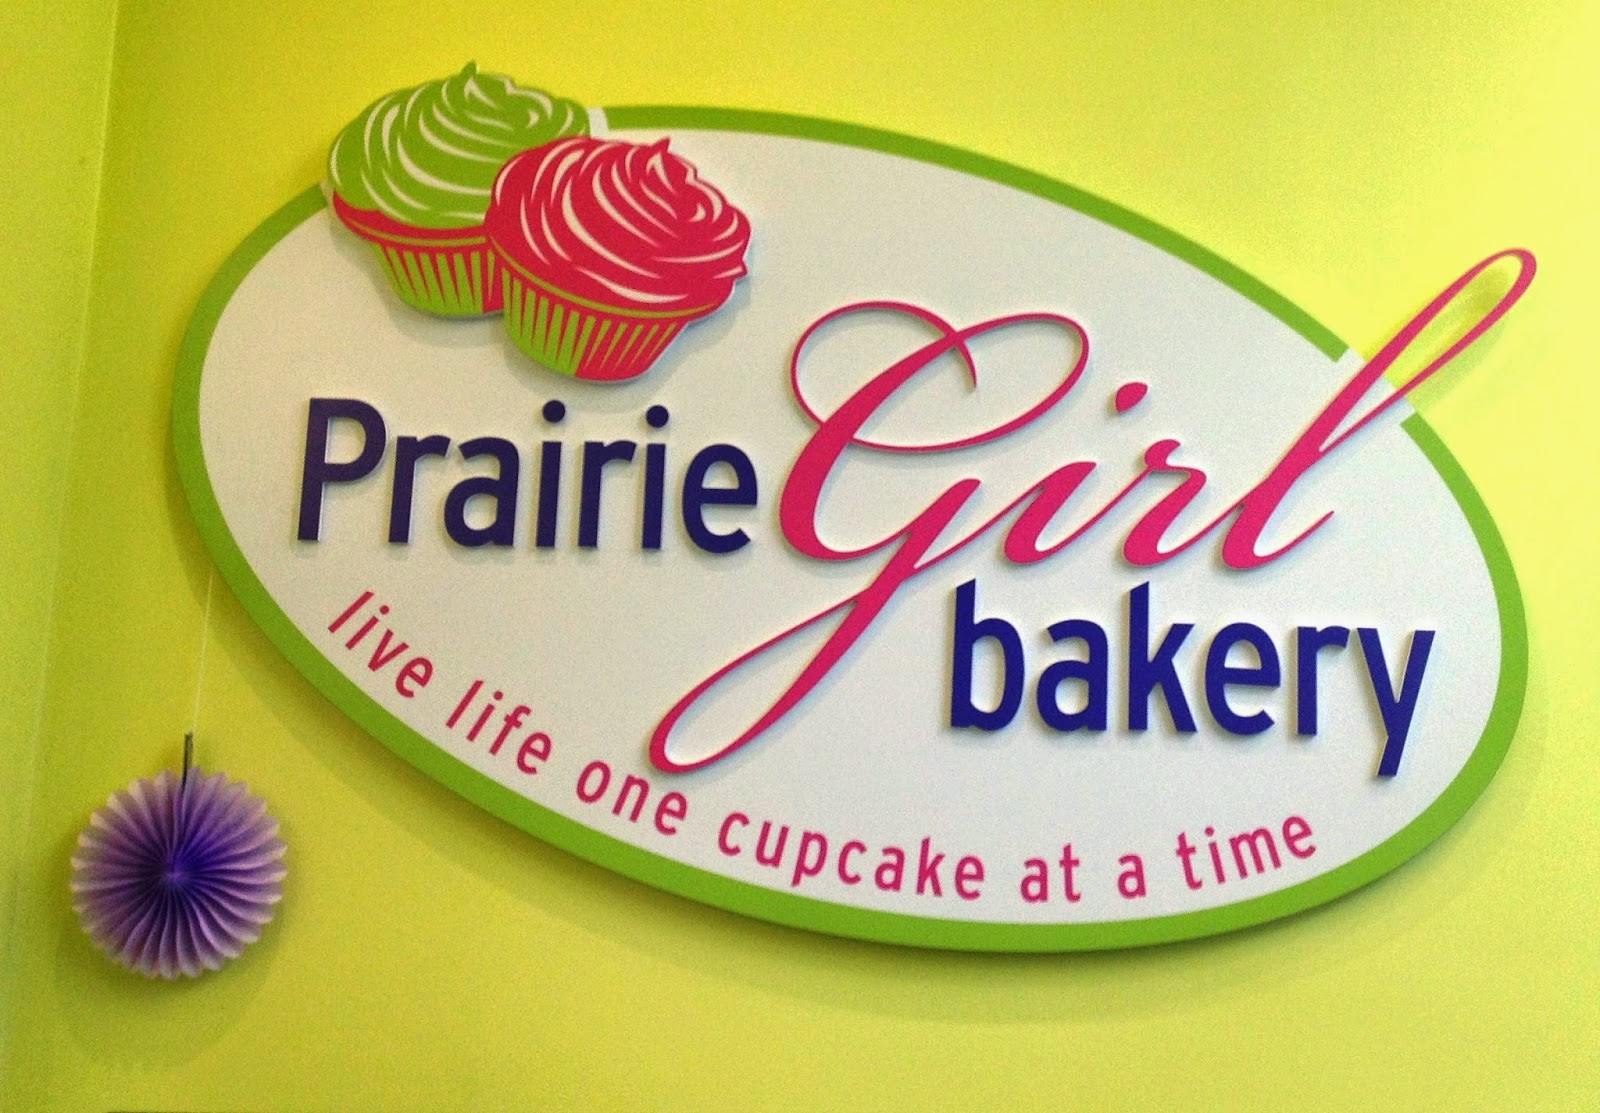 Prairie Girl Bakery in Toronto, ON